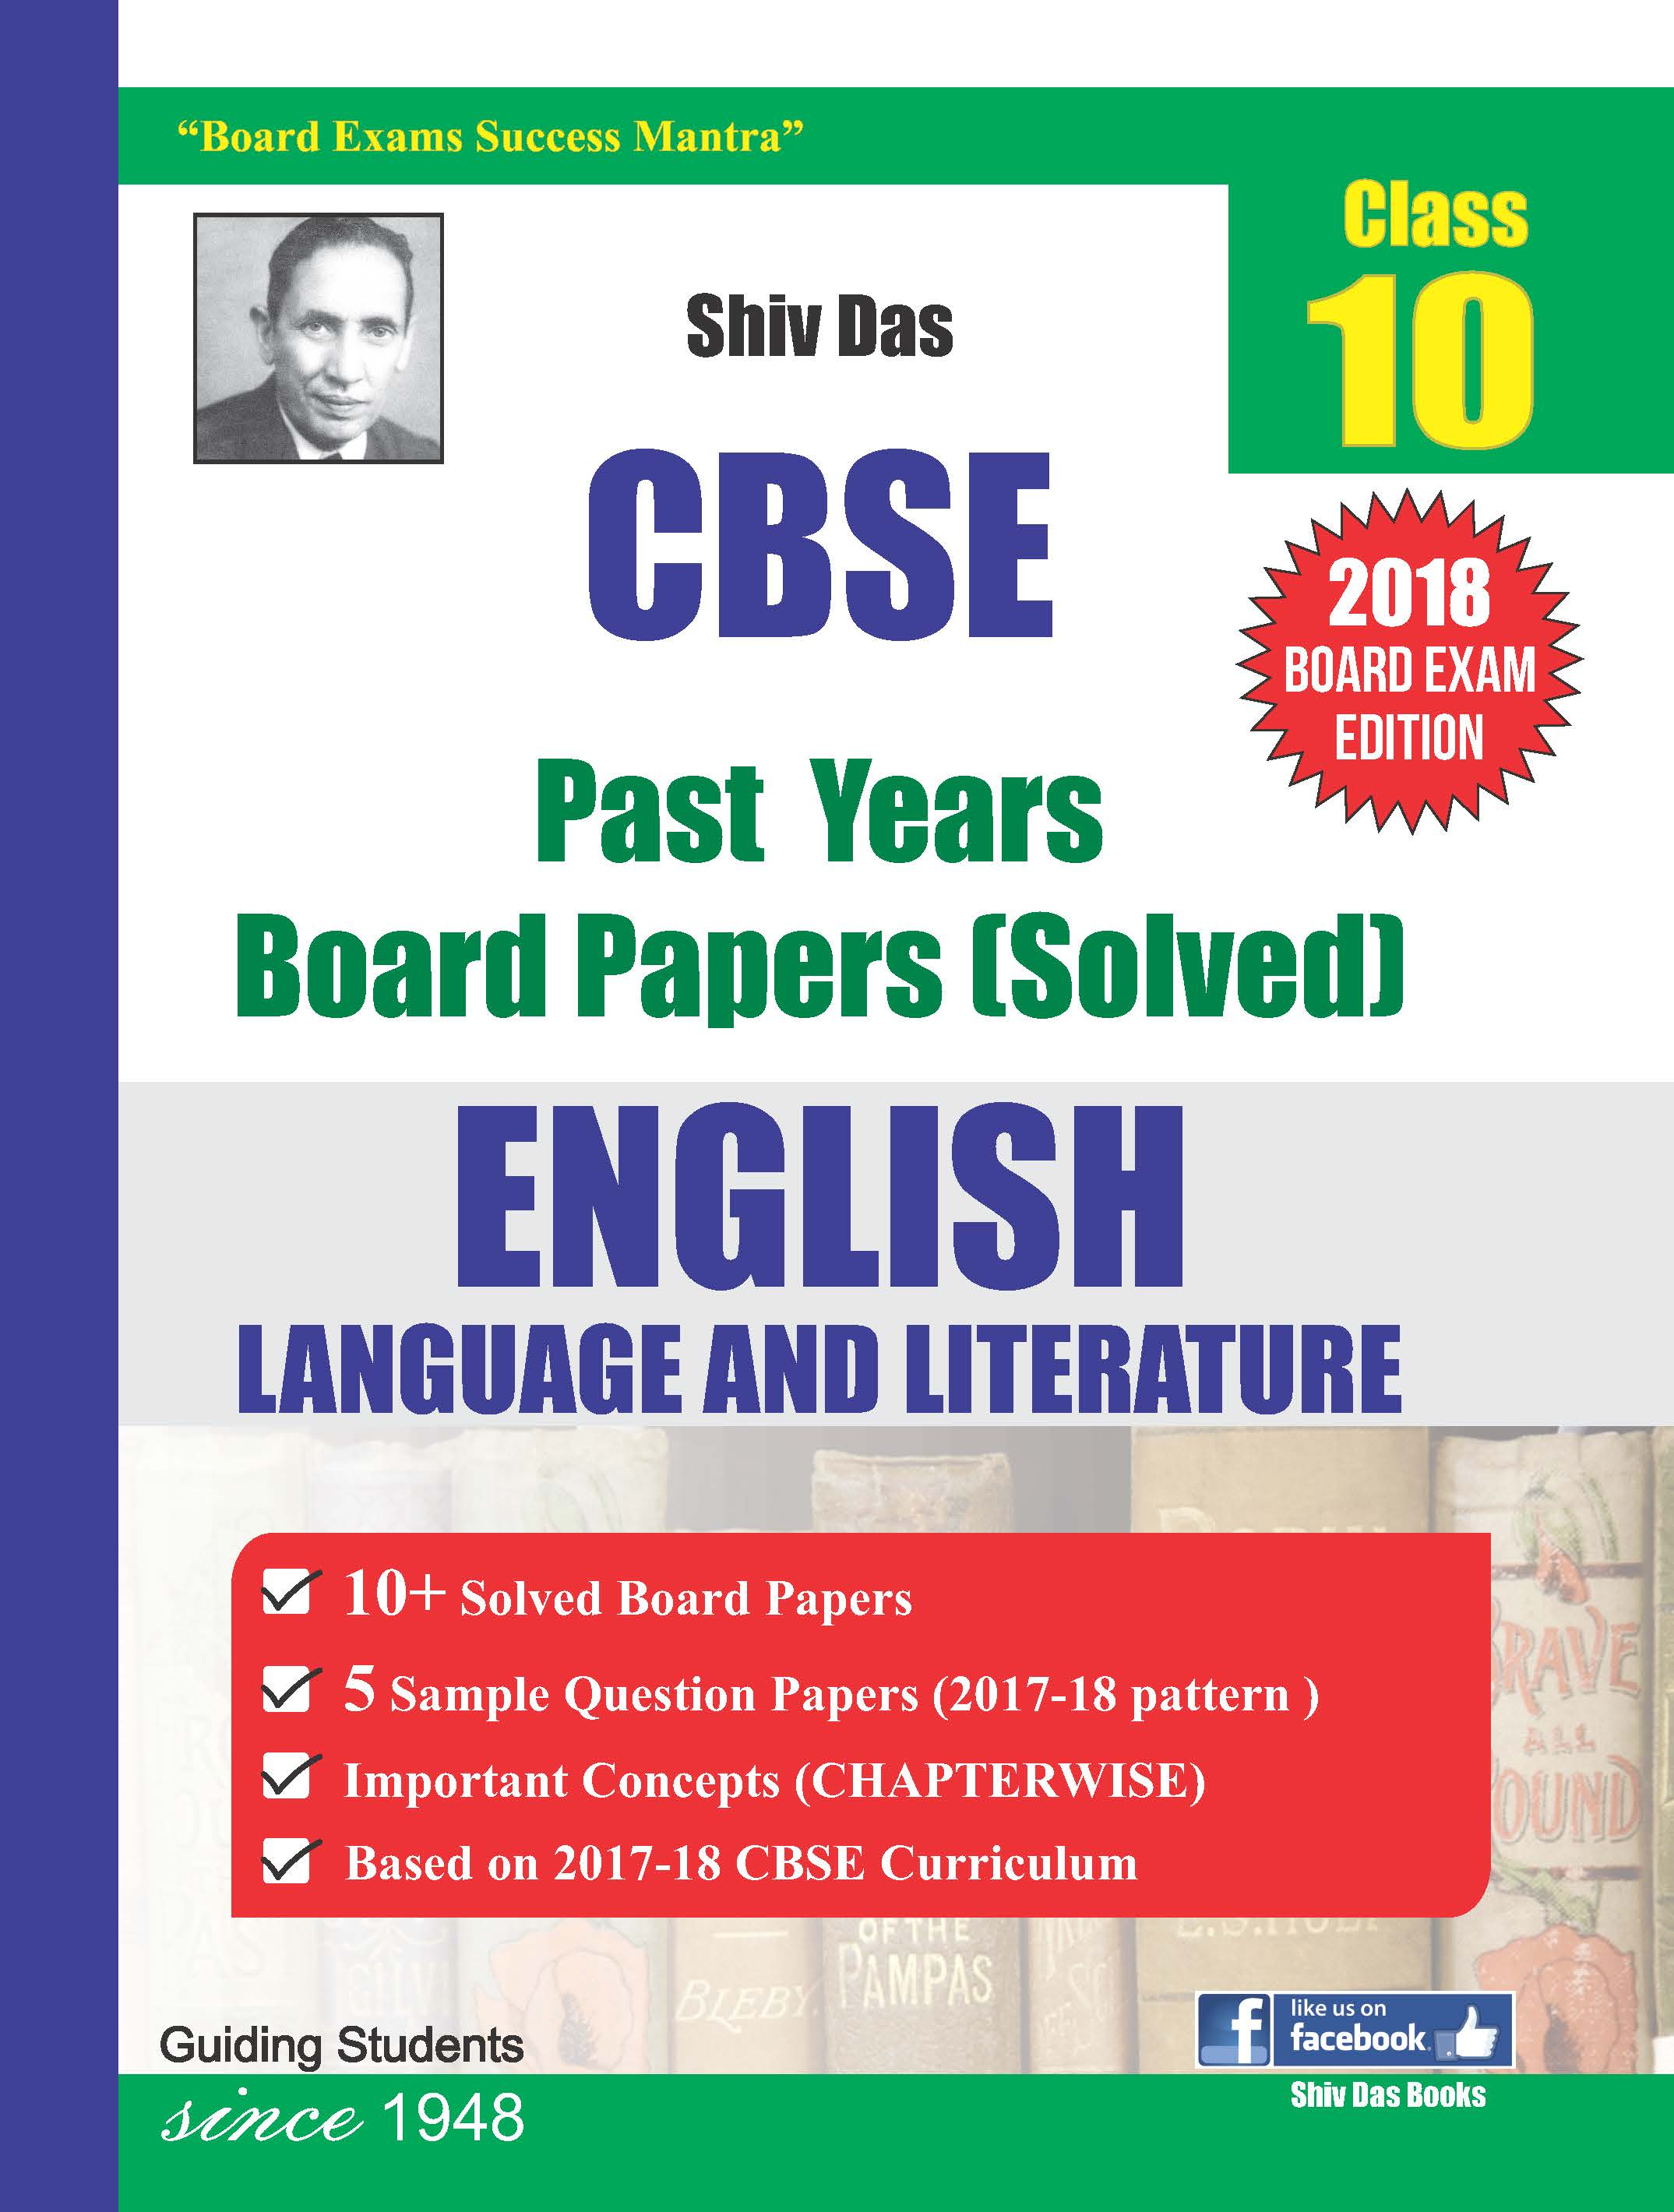 Class 10 CBSE Past Year Board Papers (Solved) English Language & Literature